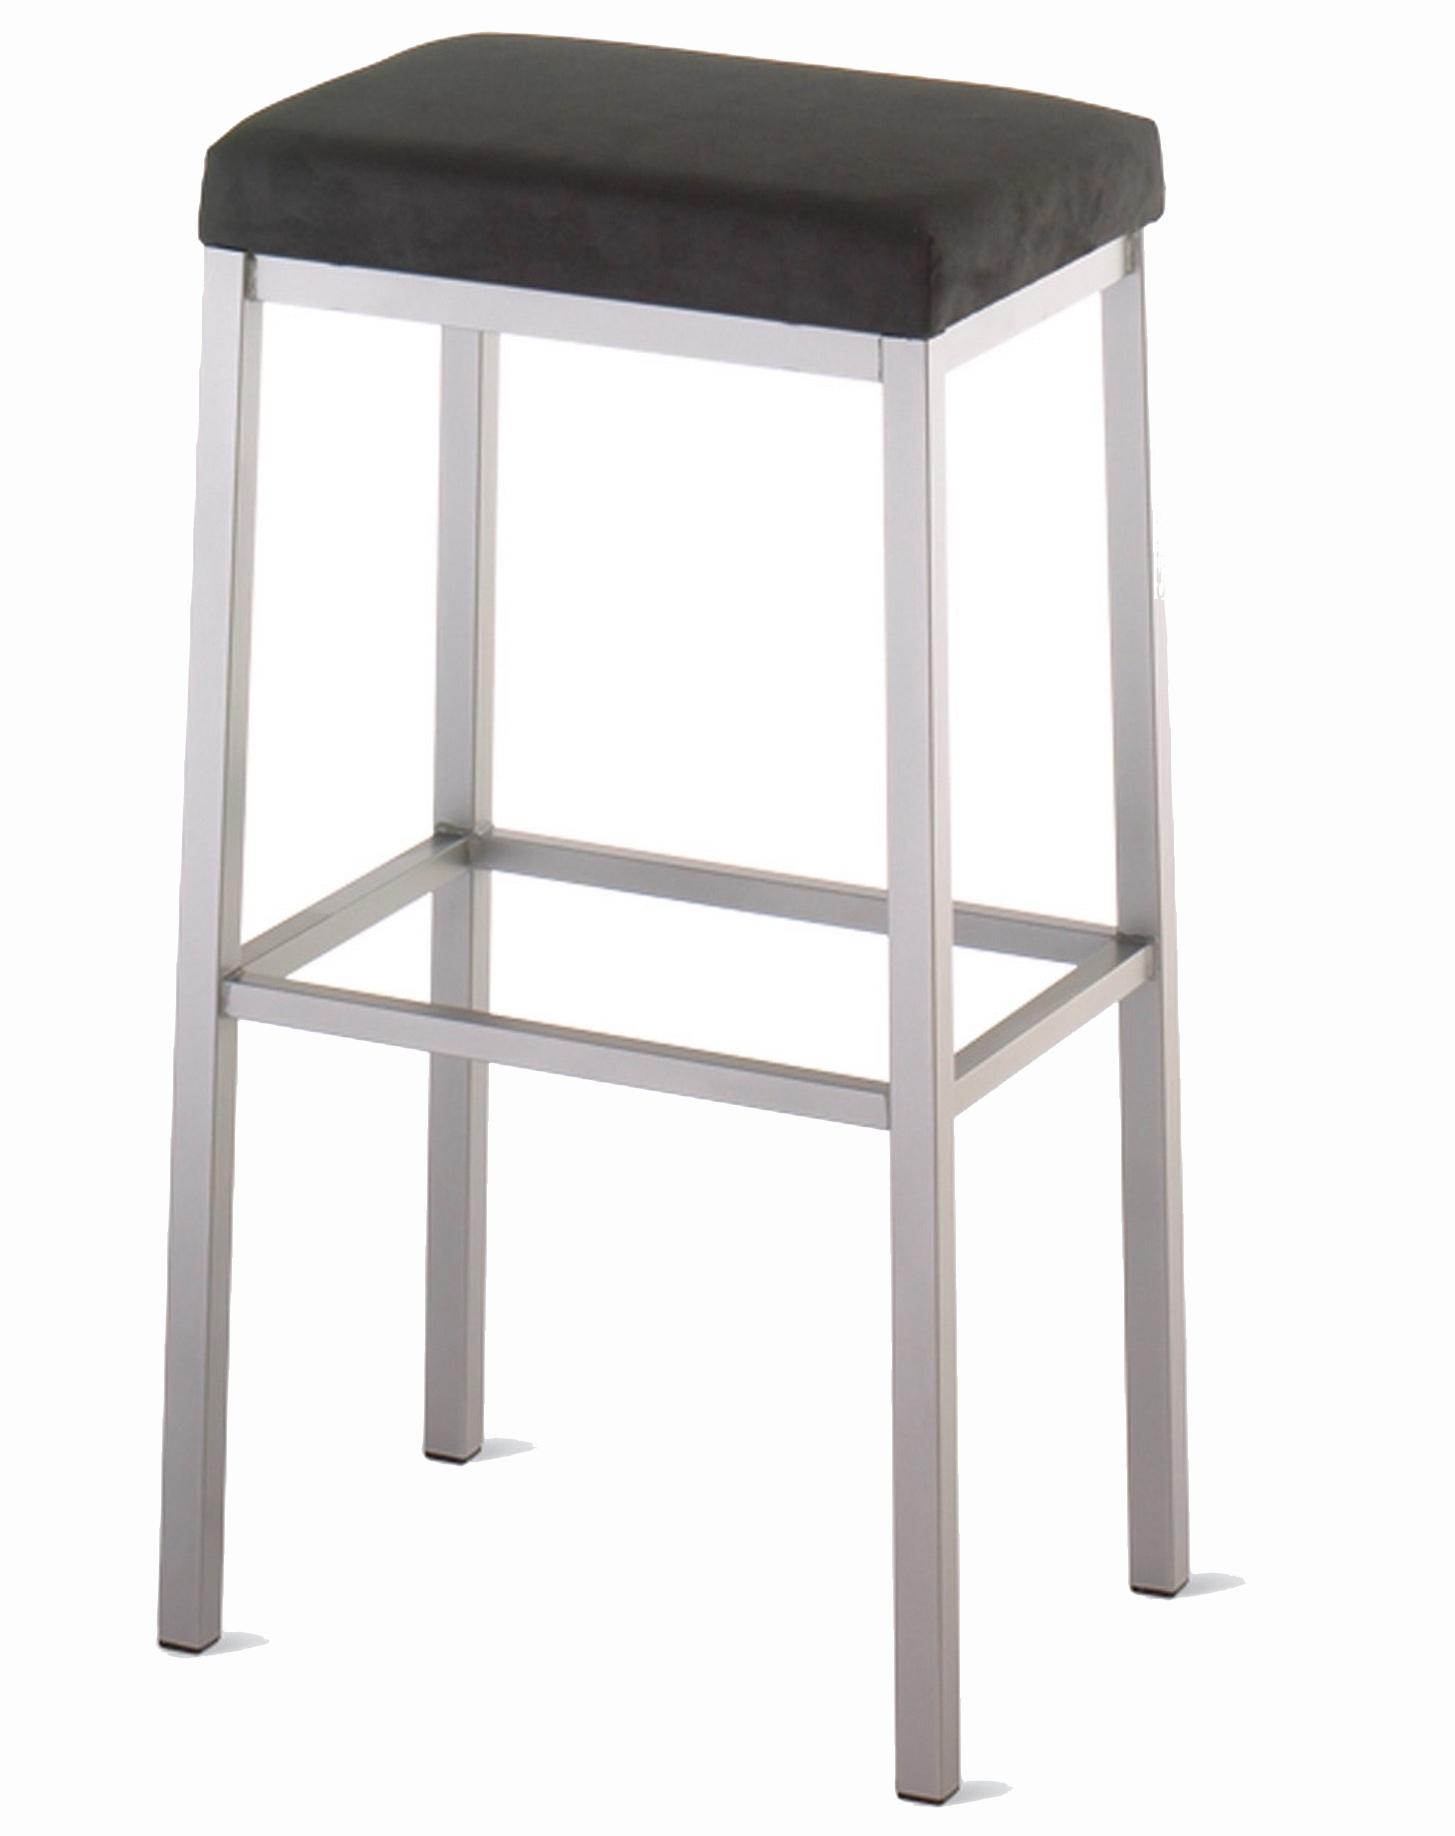 "Urban 26"" Counter Height Bradley Stool by Amisco at Dinette Depot"